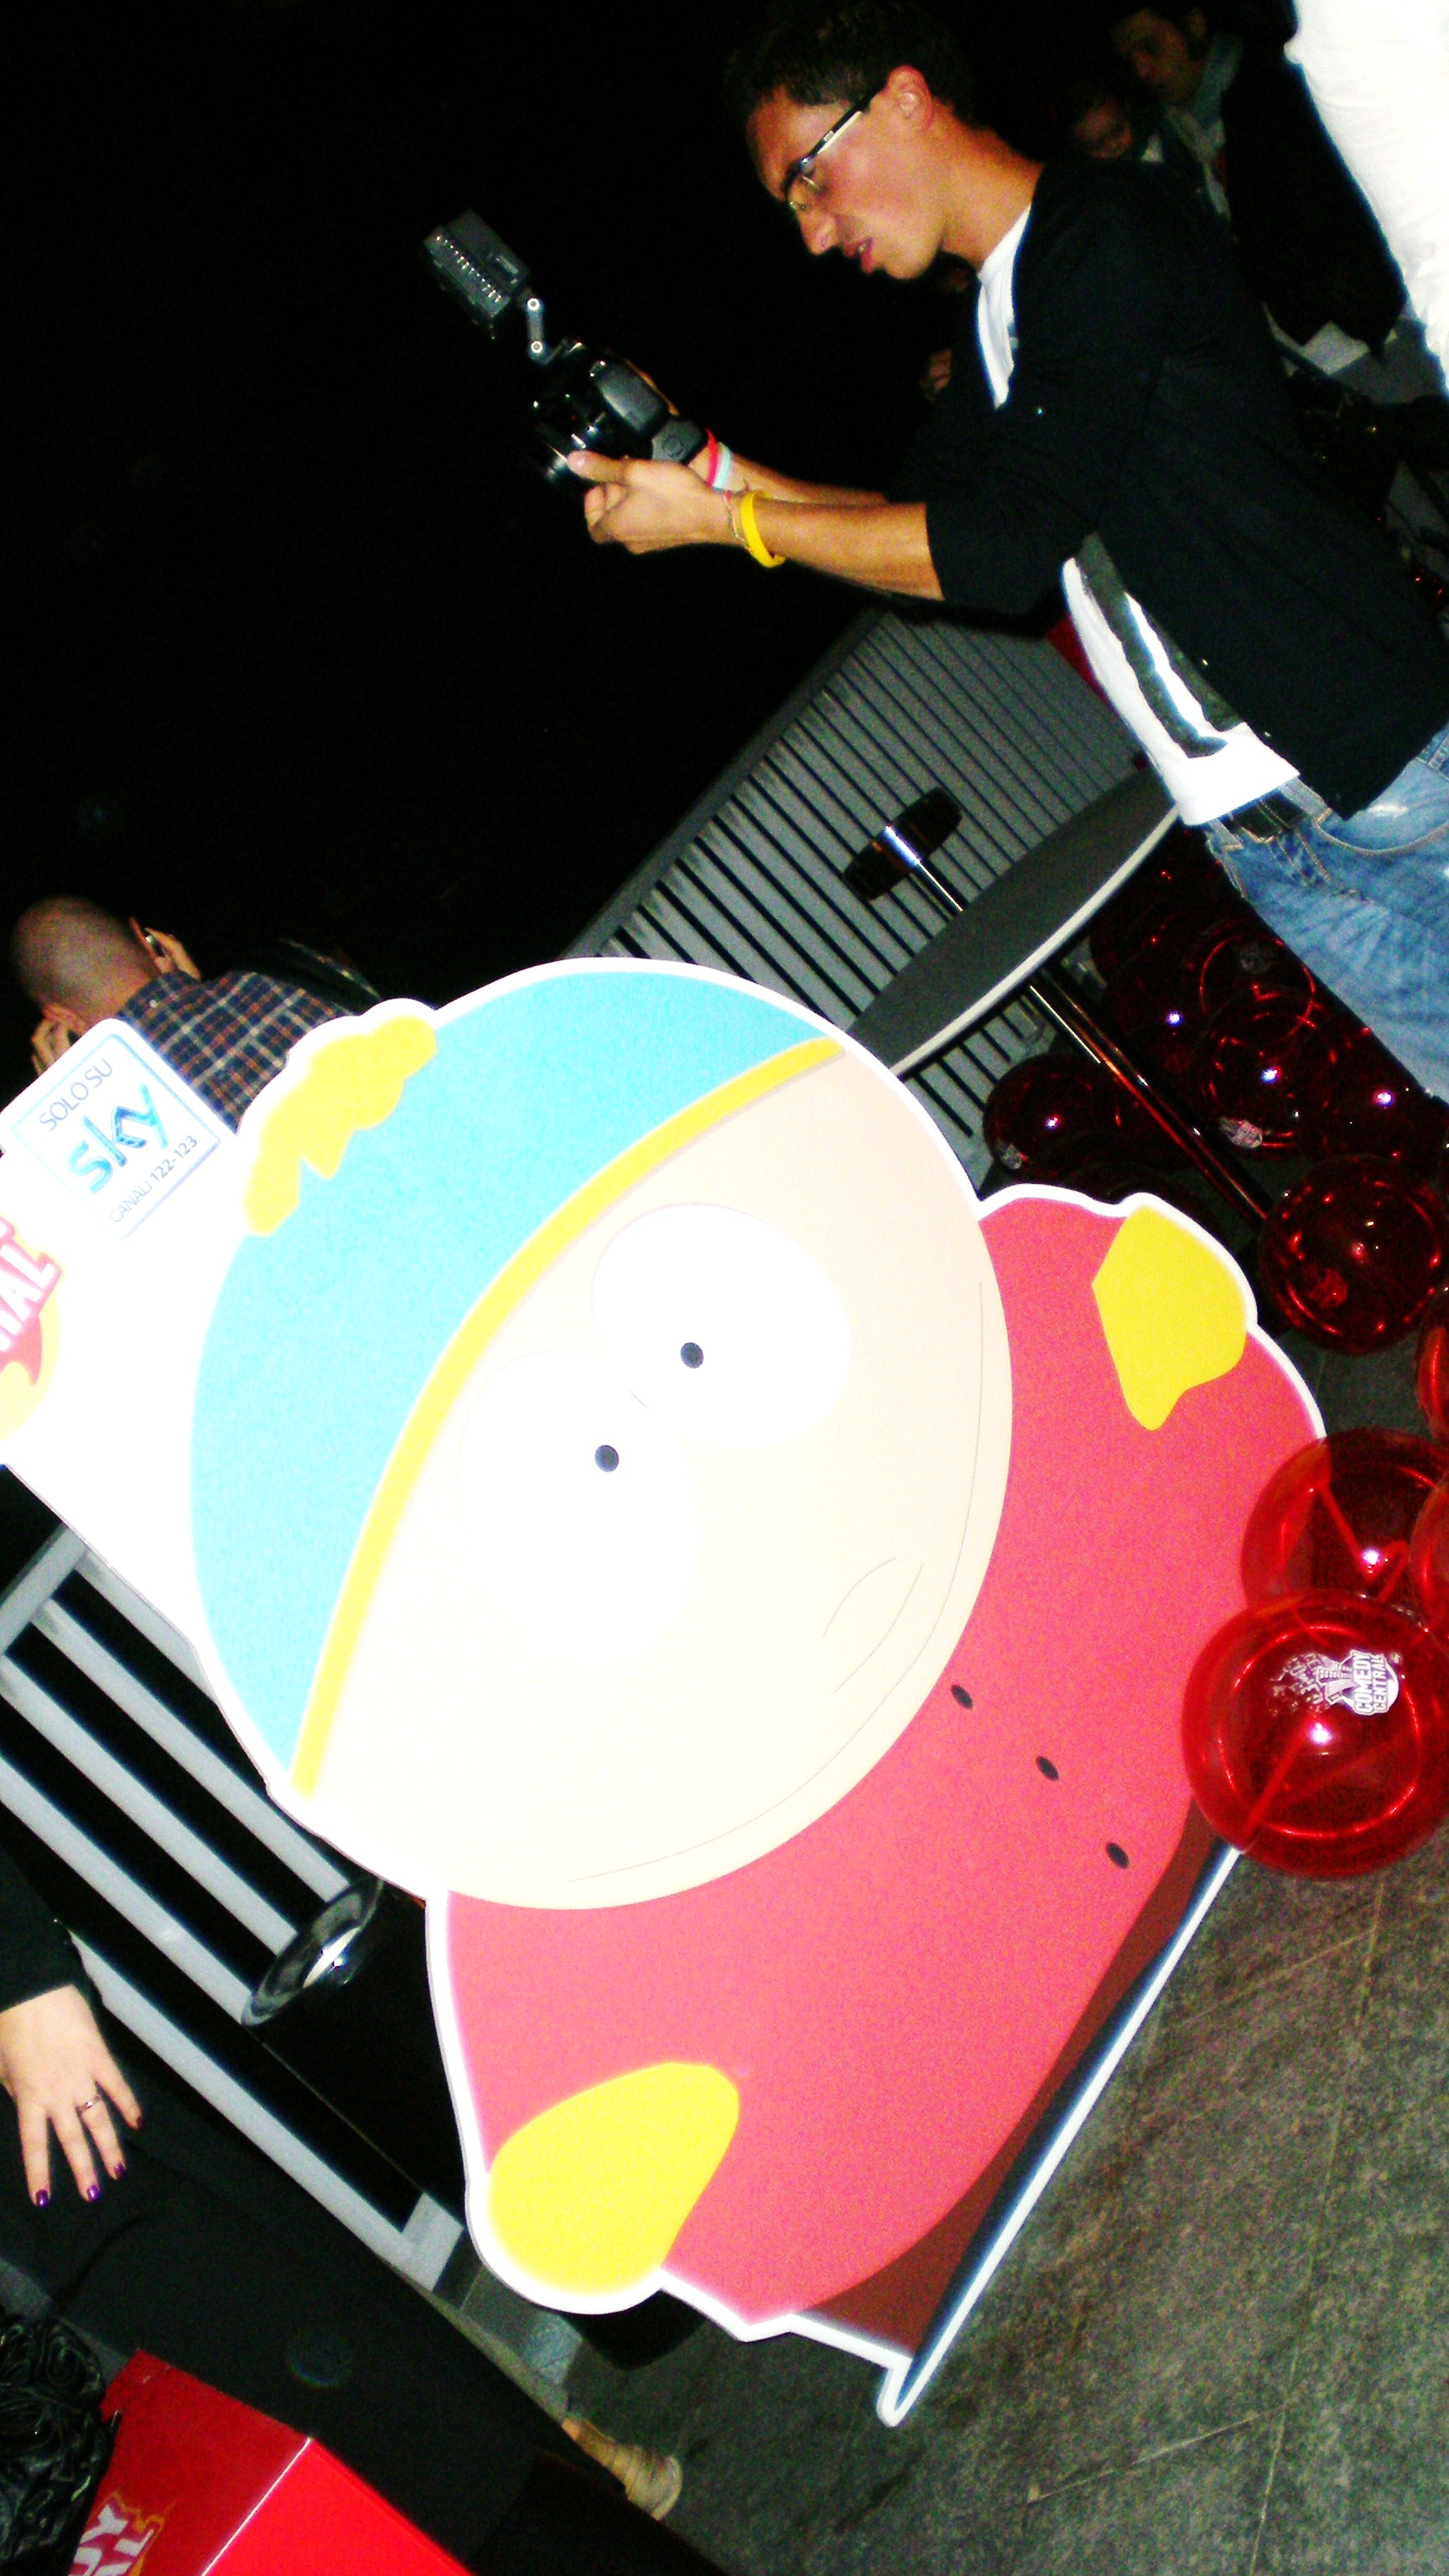 South Park party, Milano 3